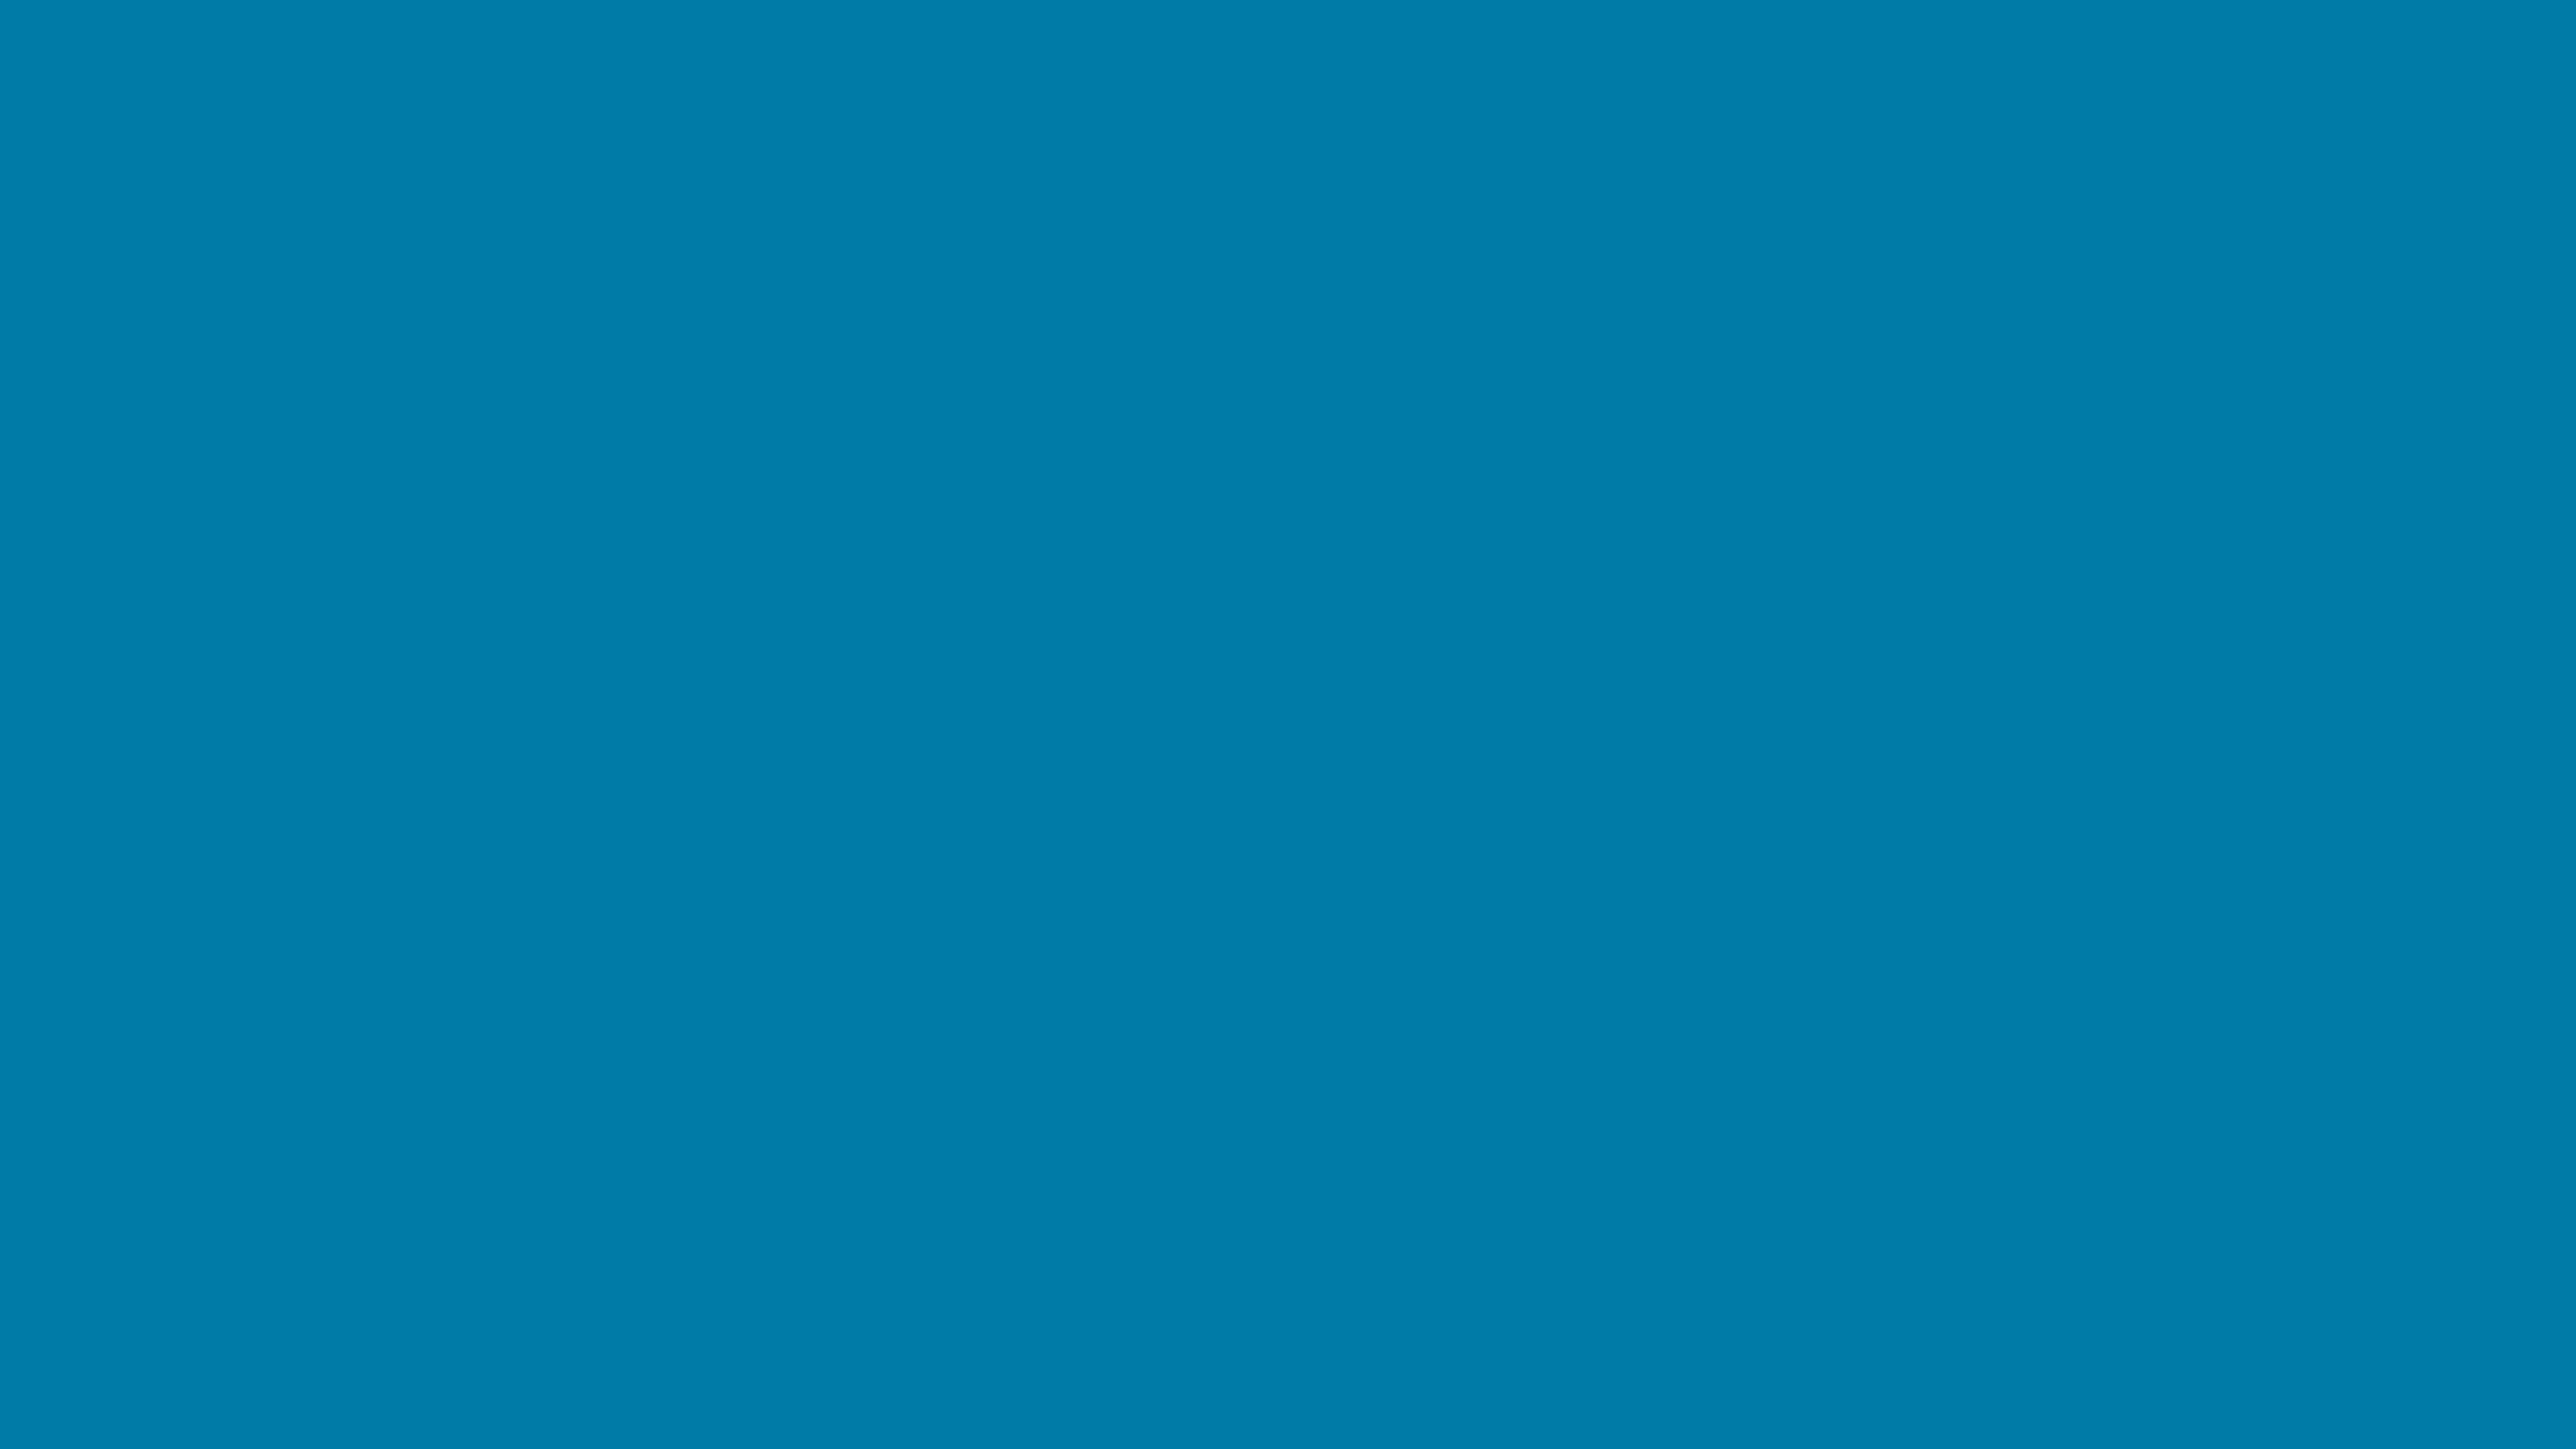 4096x2304 Cerulean Solid Color Background